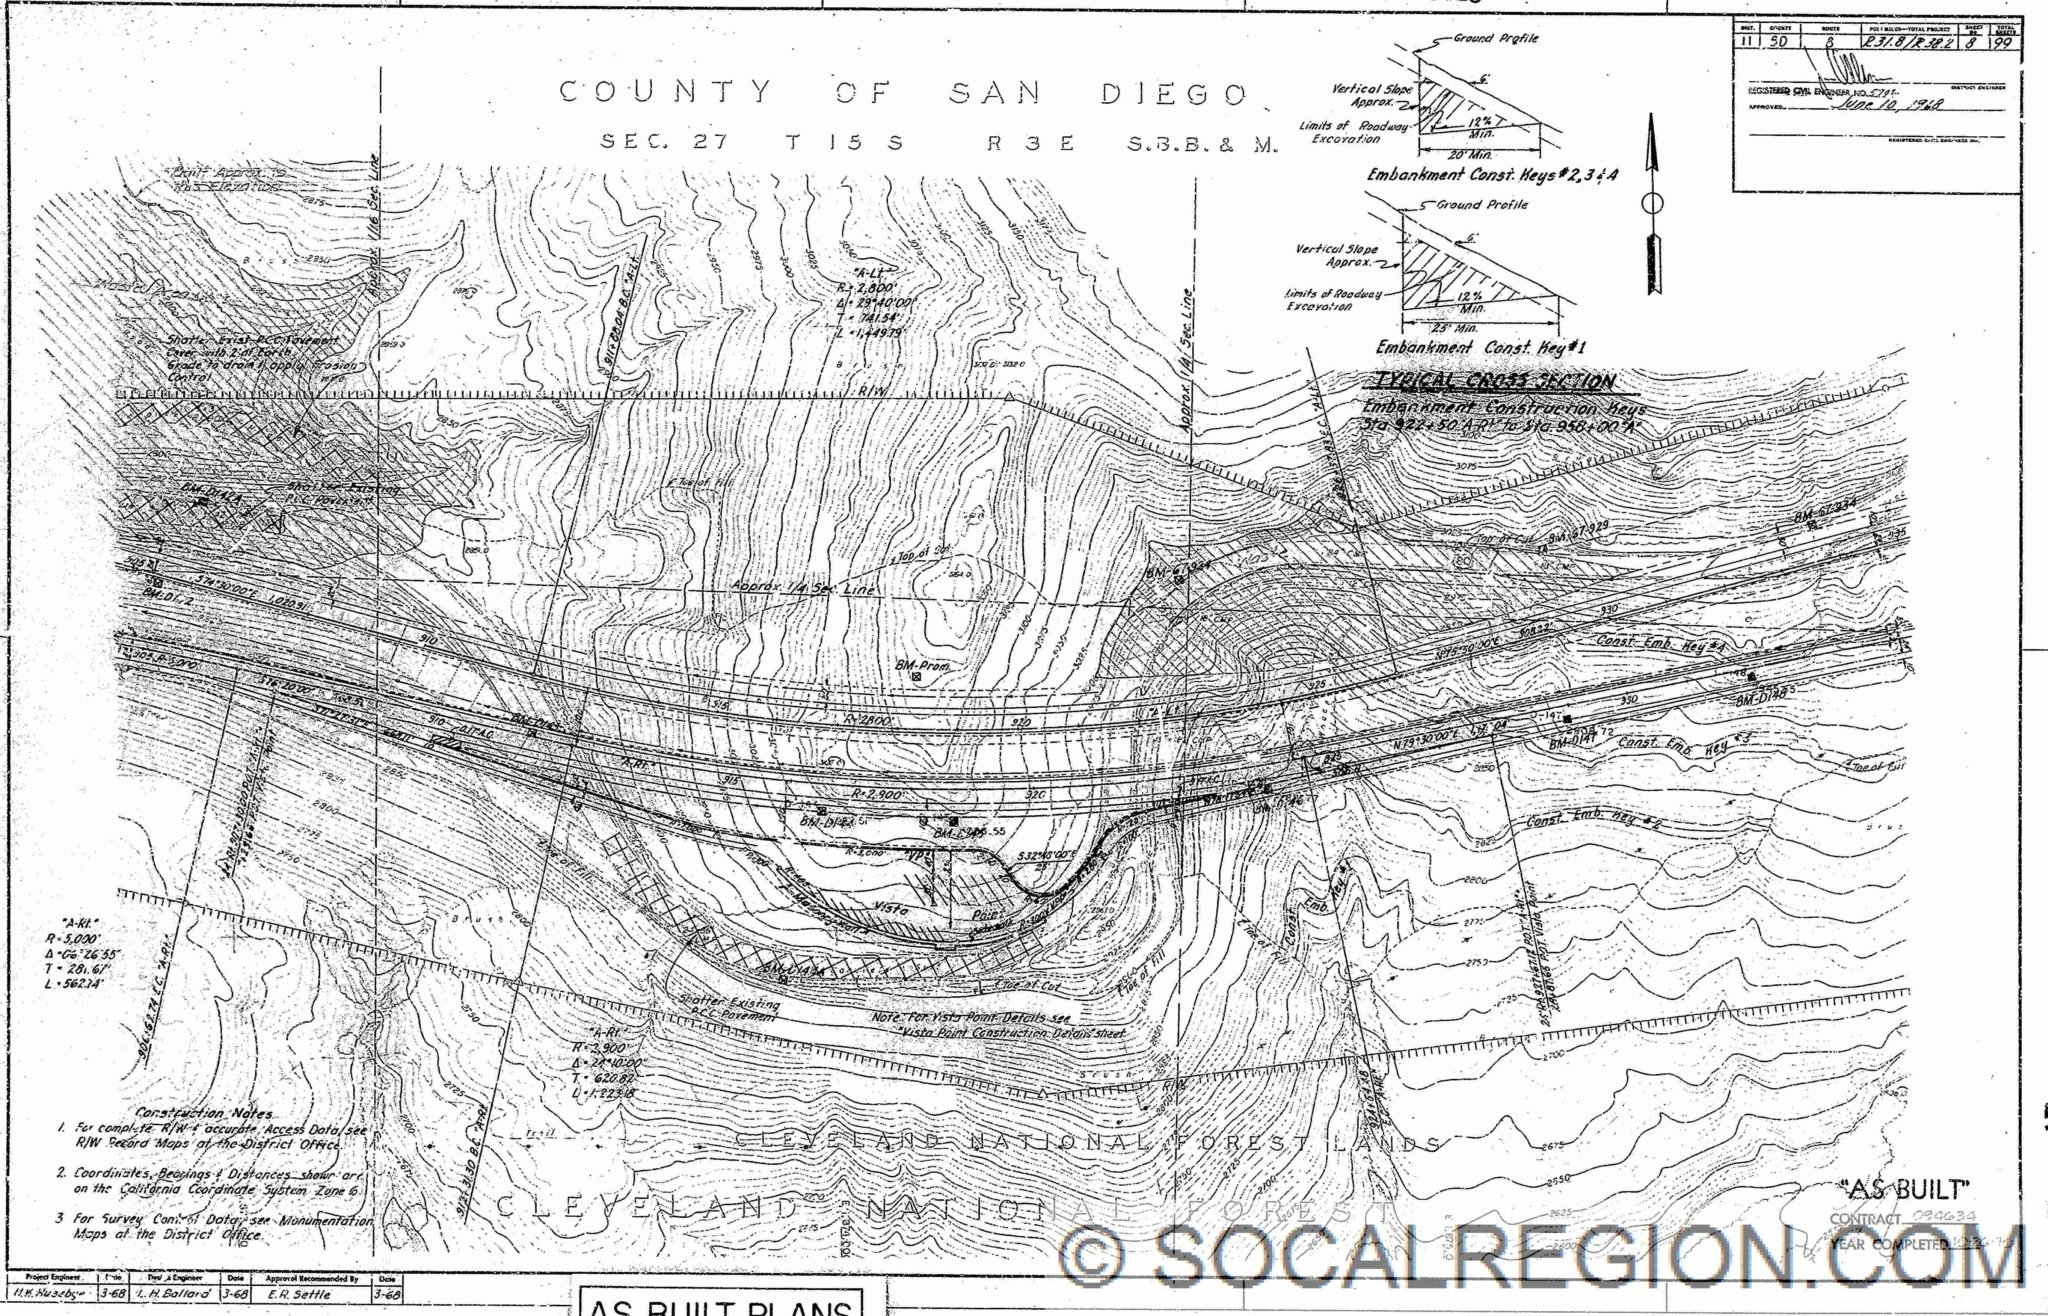 Detailed Plans For The Tunnel Area Showing The Old Alignment In Relation To The Present Freeway